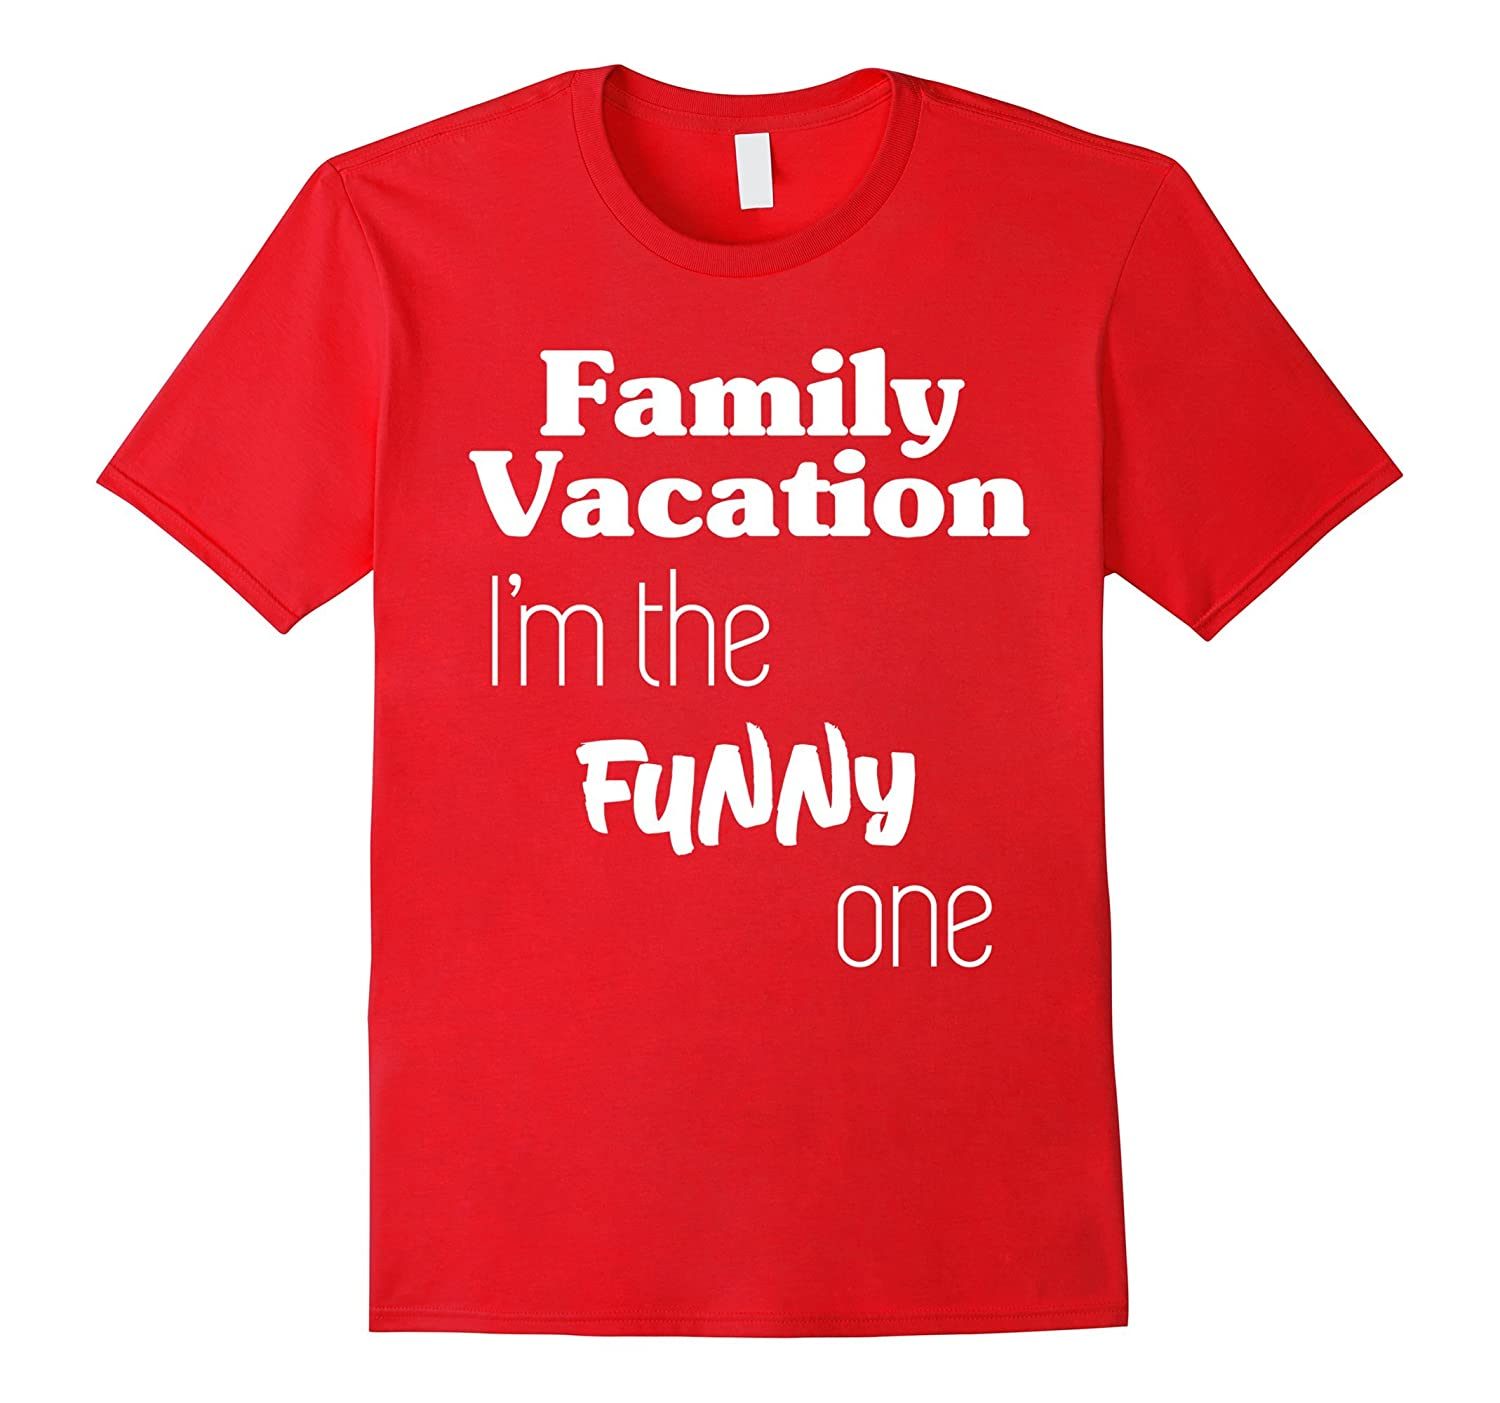 Family Vacation T-Shirt Im The Funny One-Vaci